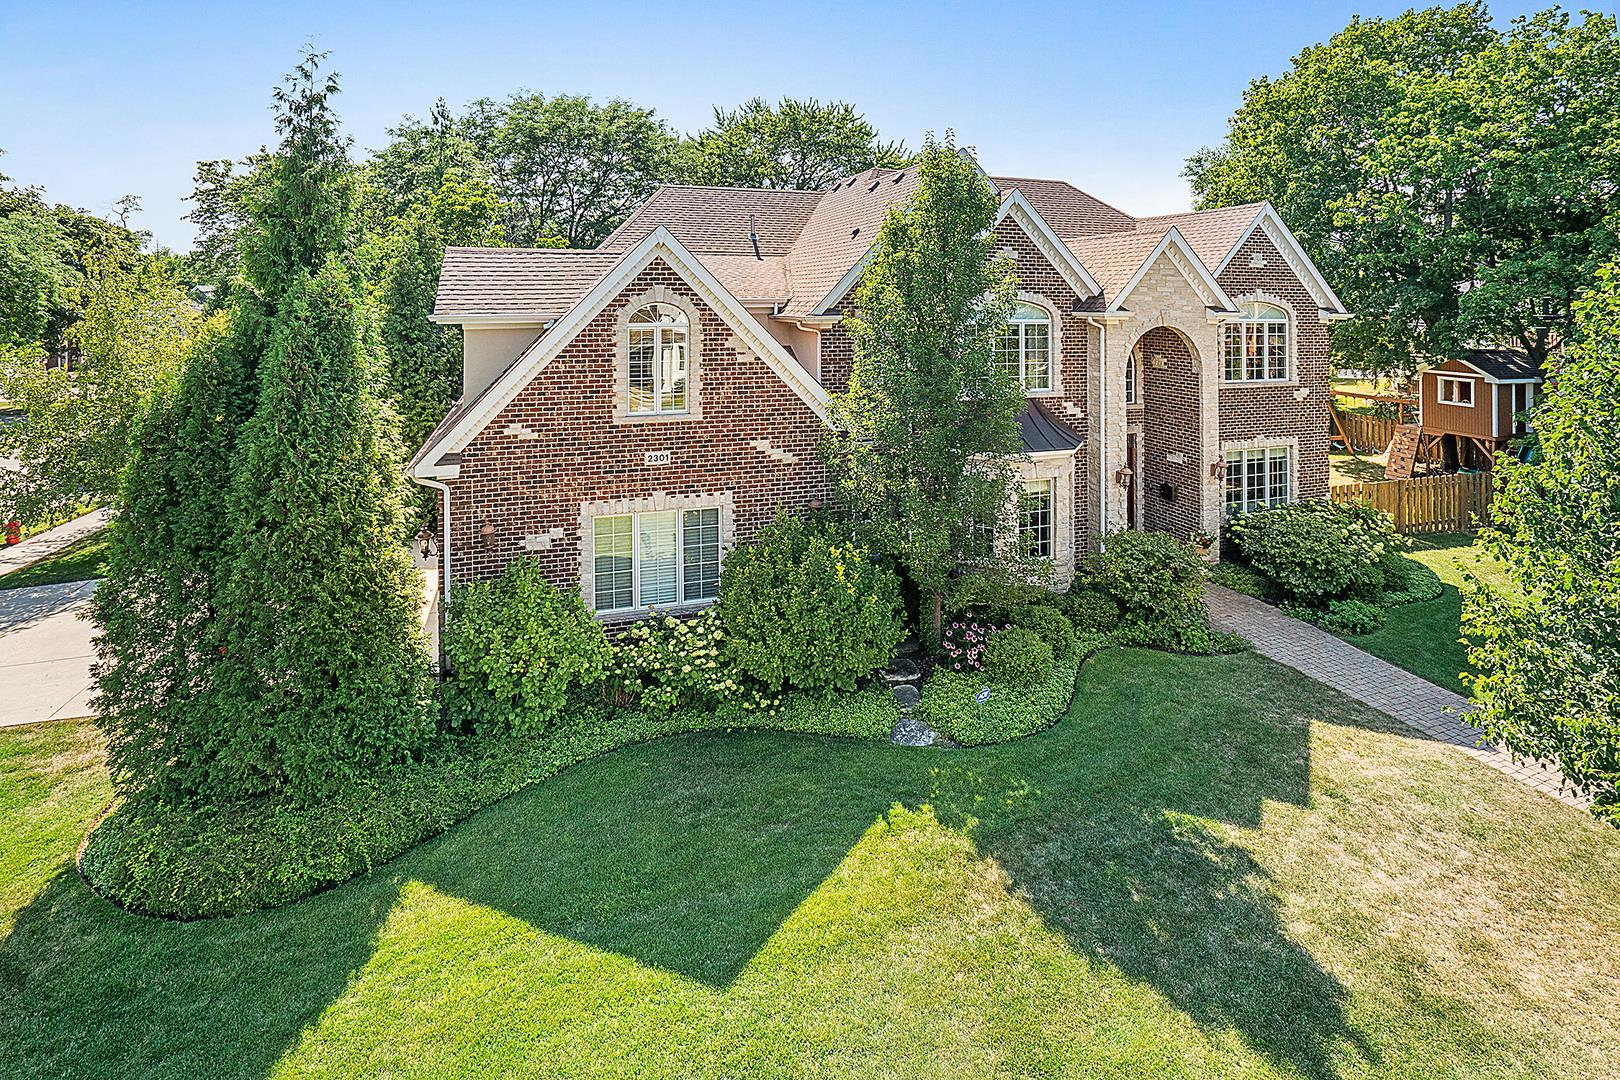 2301 Ash Lane, Northbrook, IL 60062 - #: 10880269